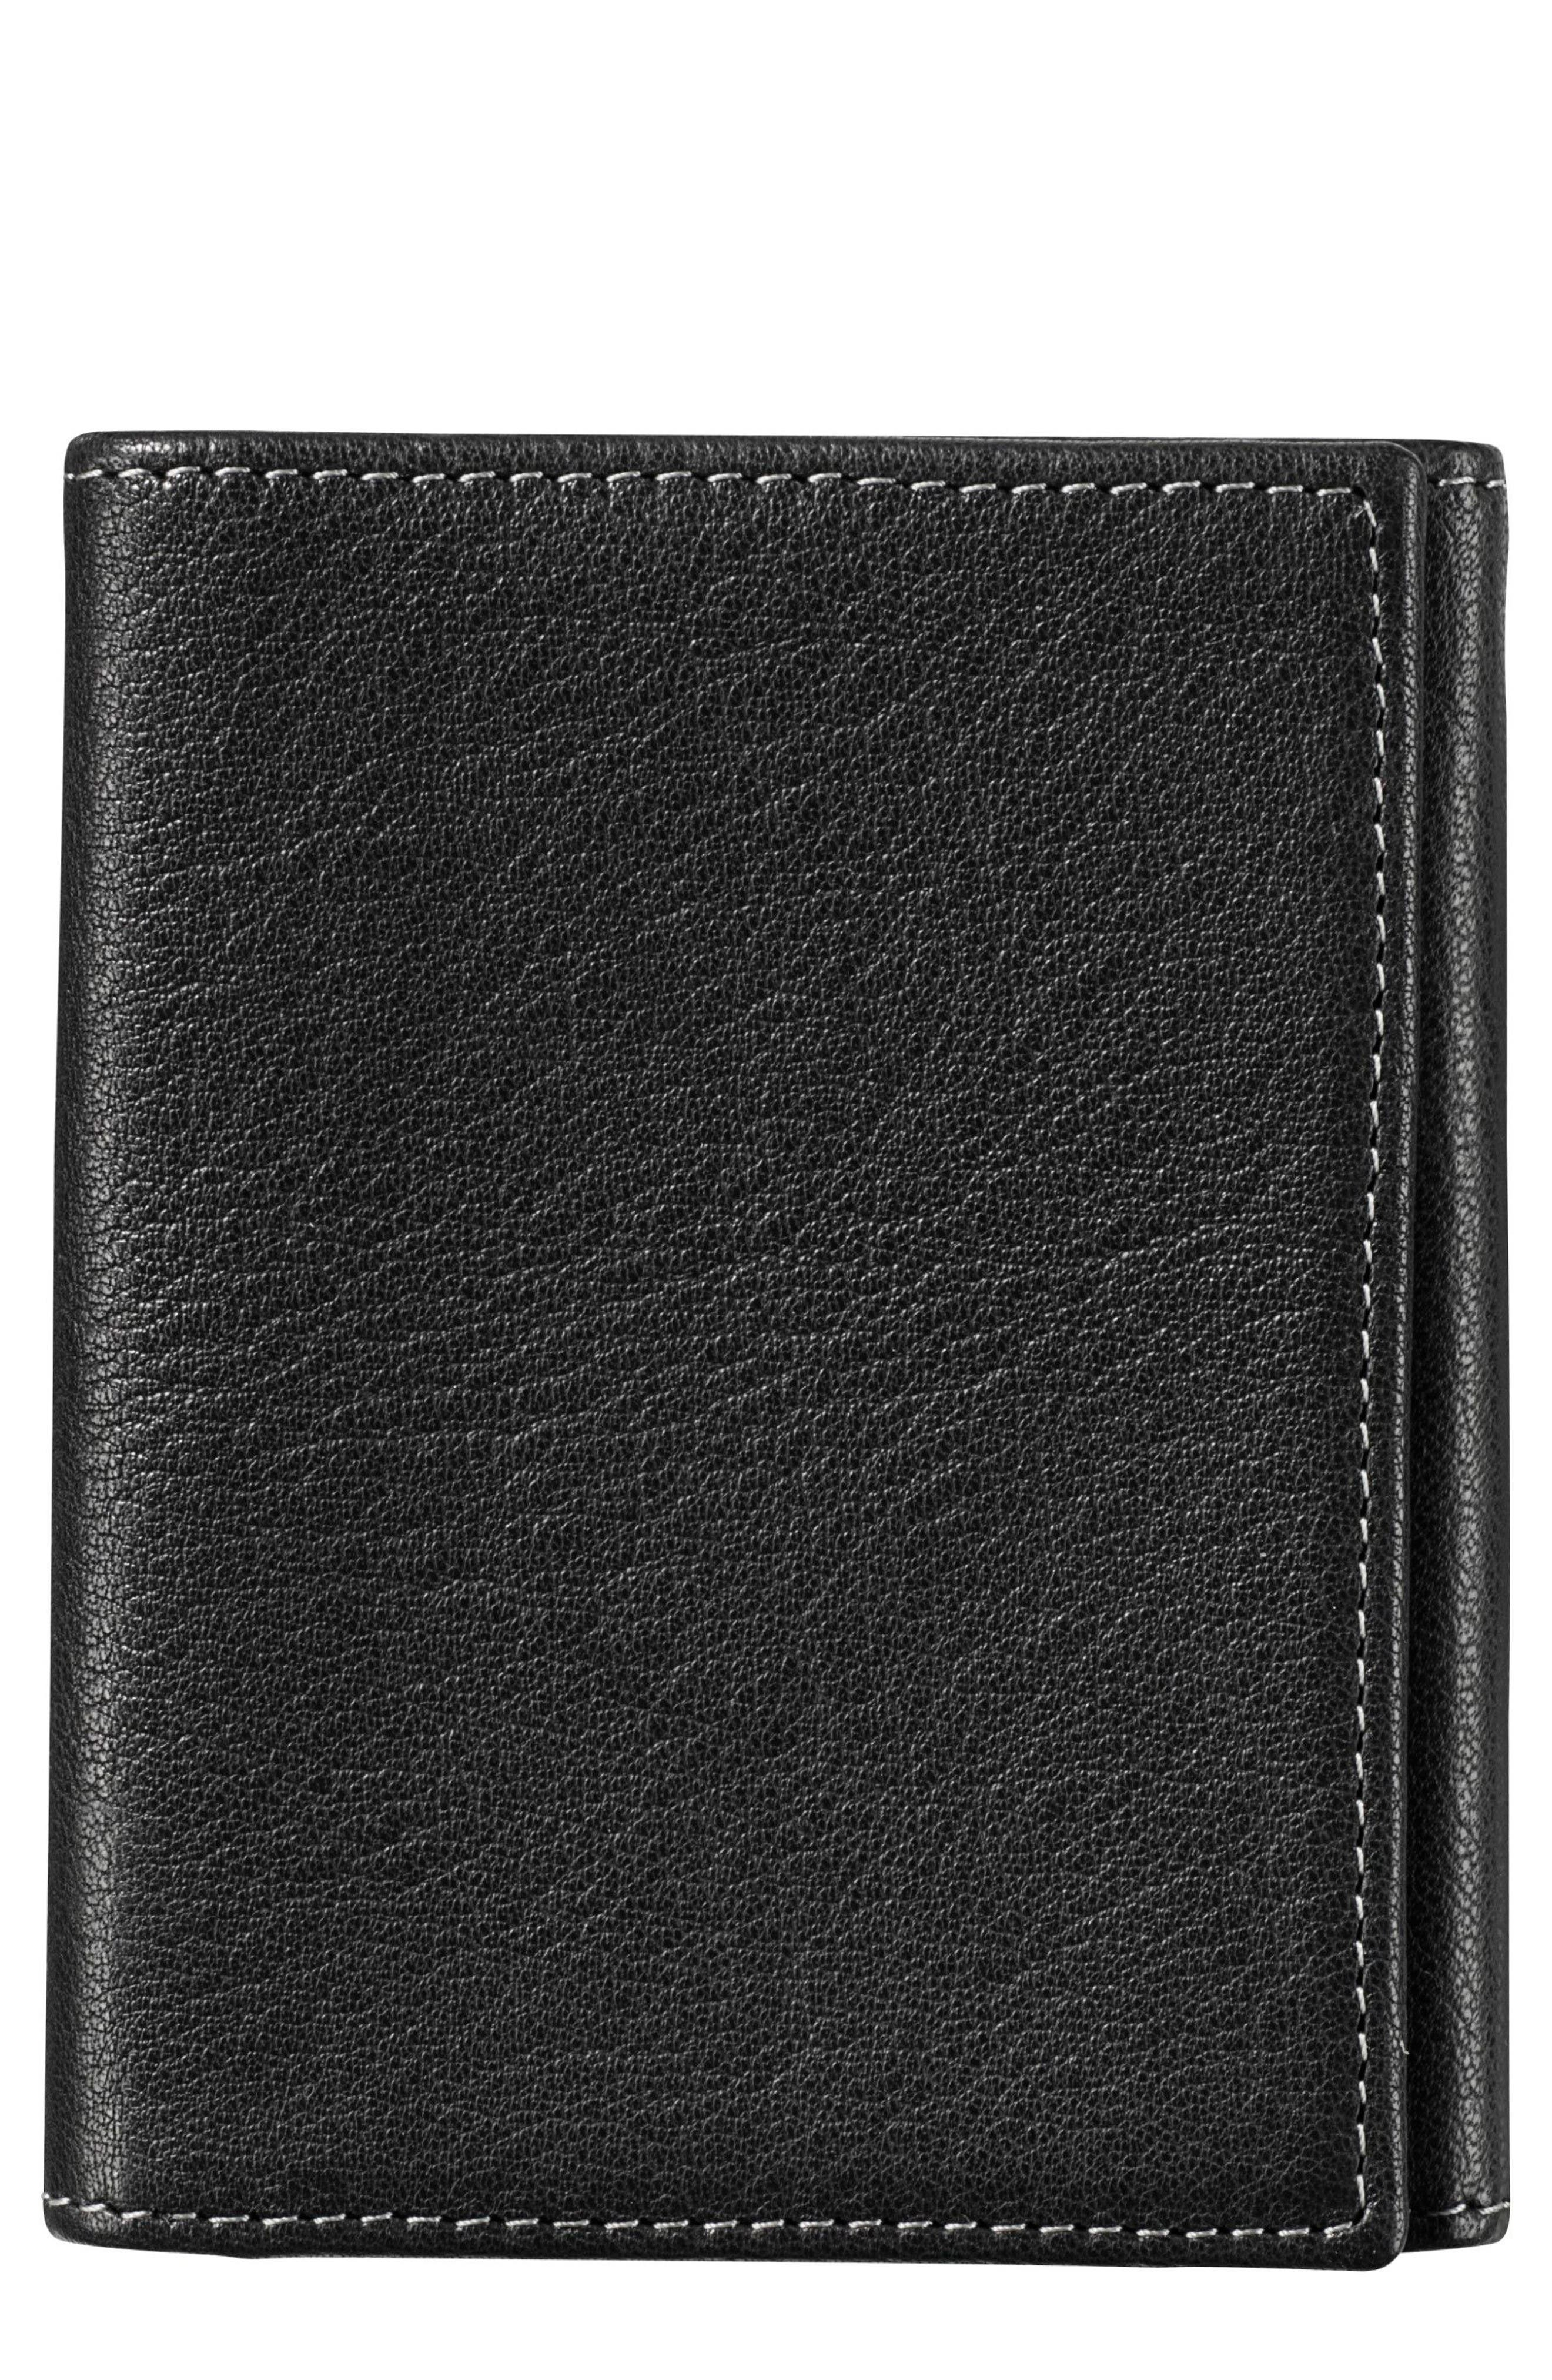 Alternate Image 1 Selected - Johnston & Murphy Leather Wallet